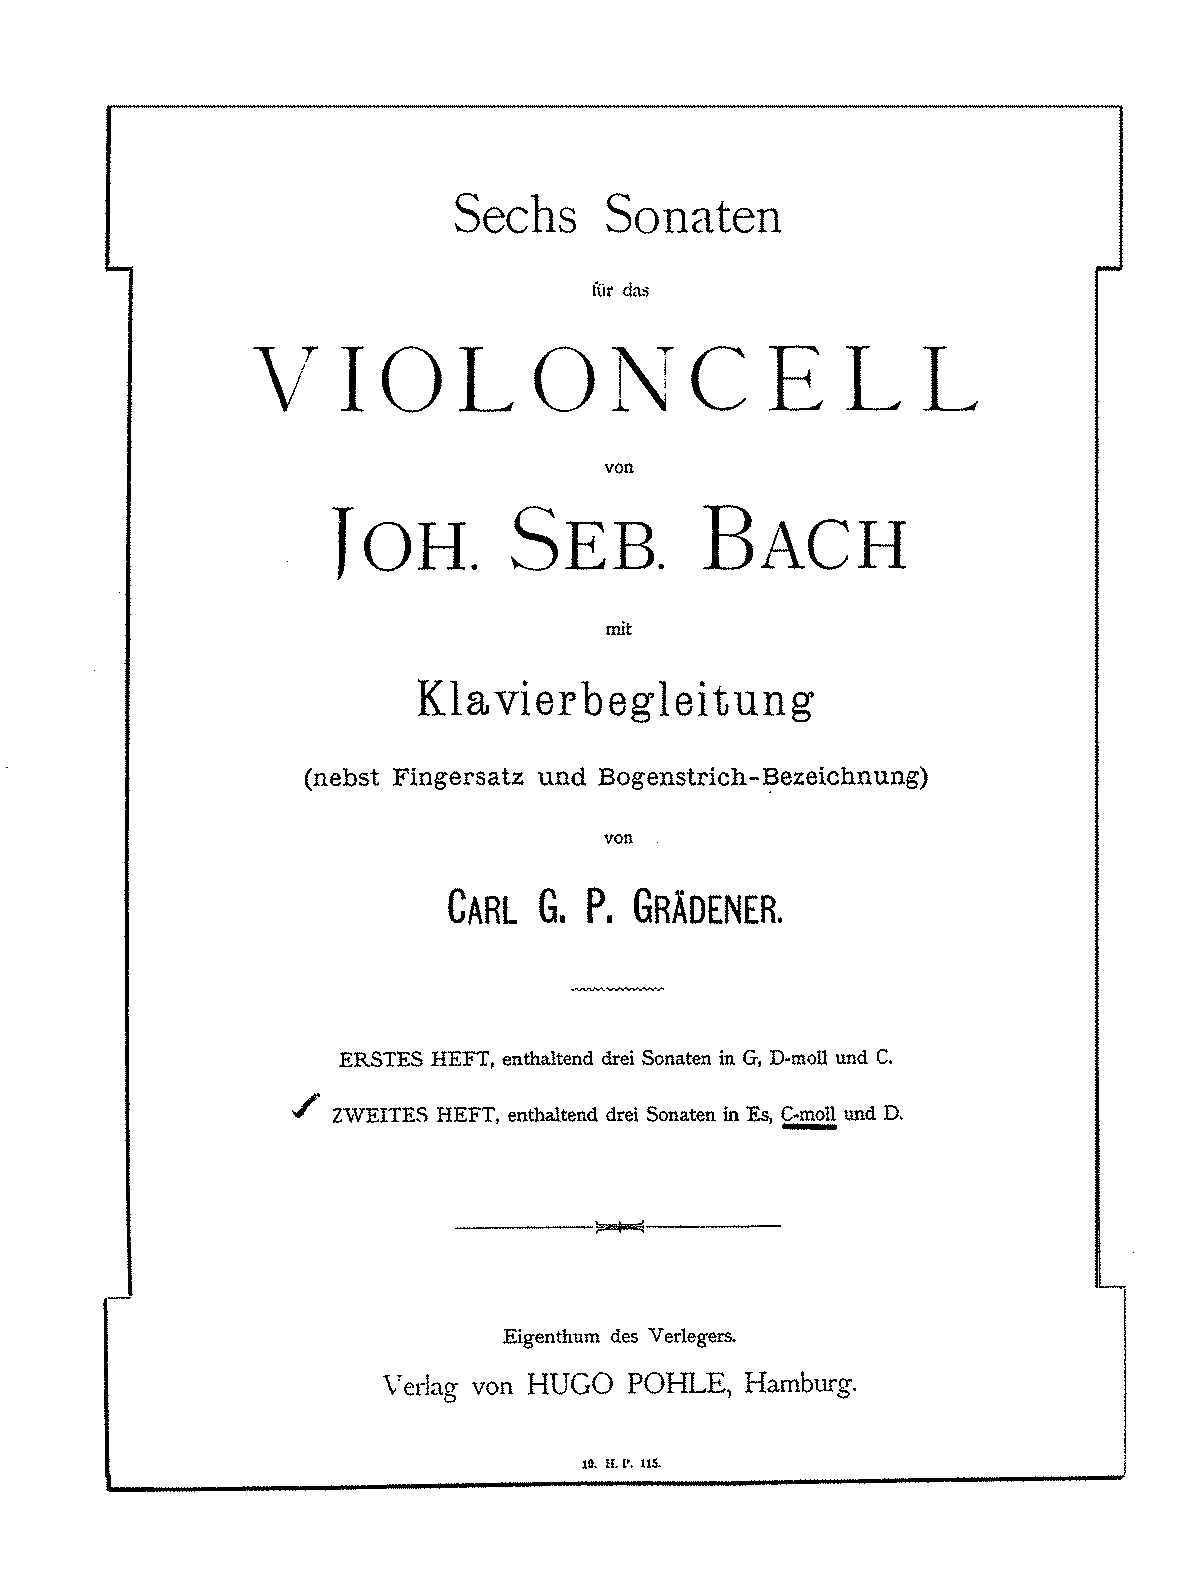 PMLP164353-Bach - Suite Vc-Pno 5 Suite No5 (Gradener Pohle 1871) for cello and piano parts.pdf